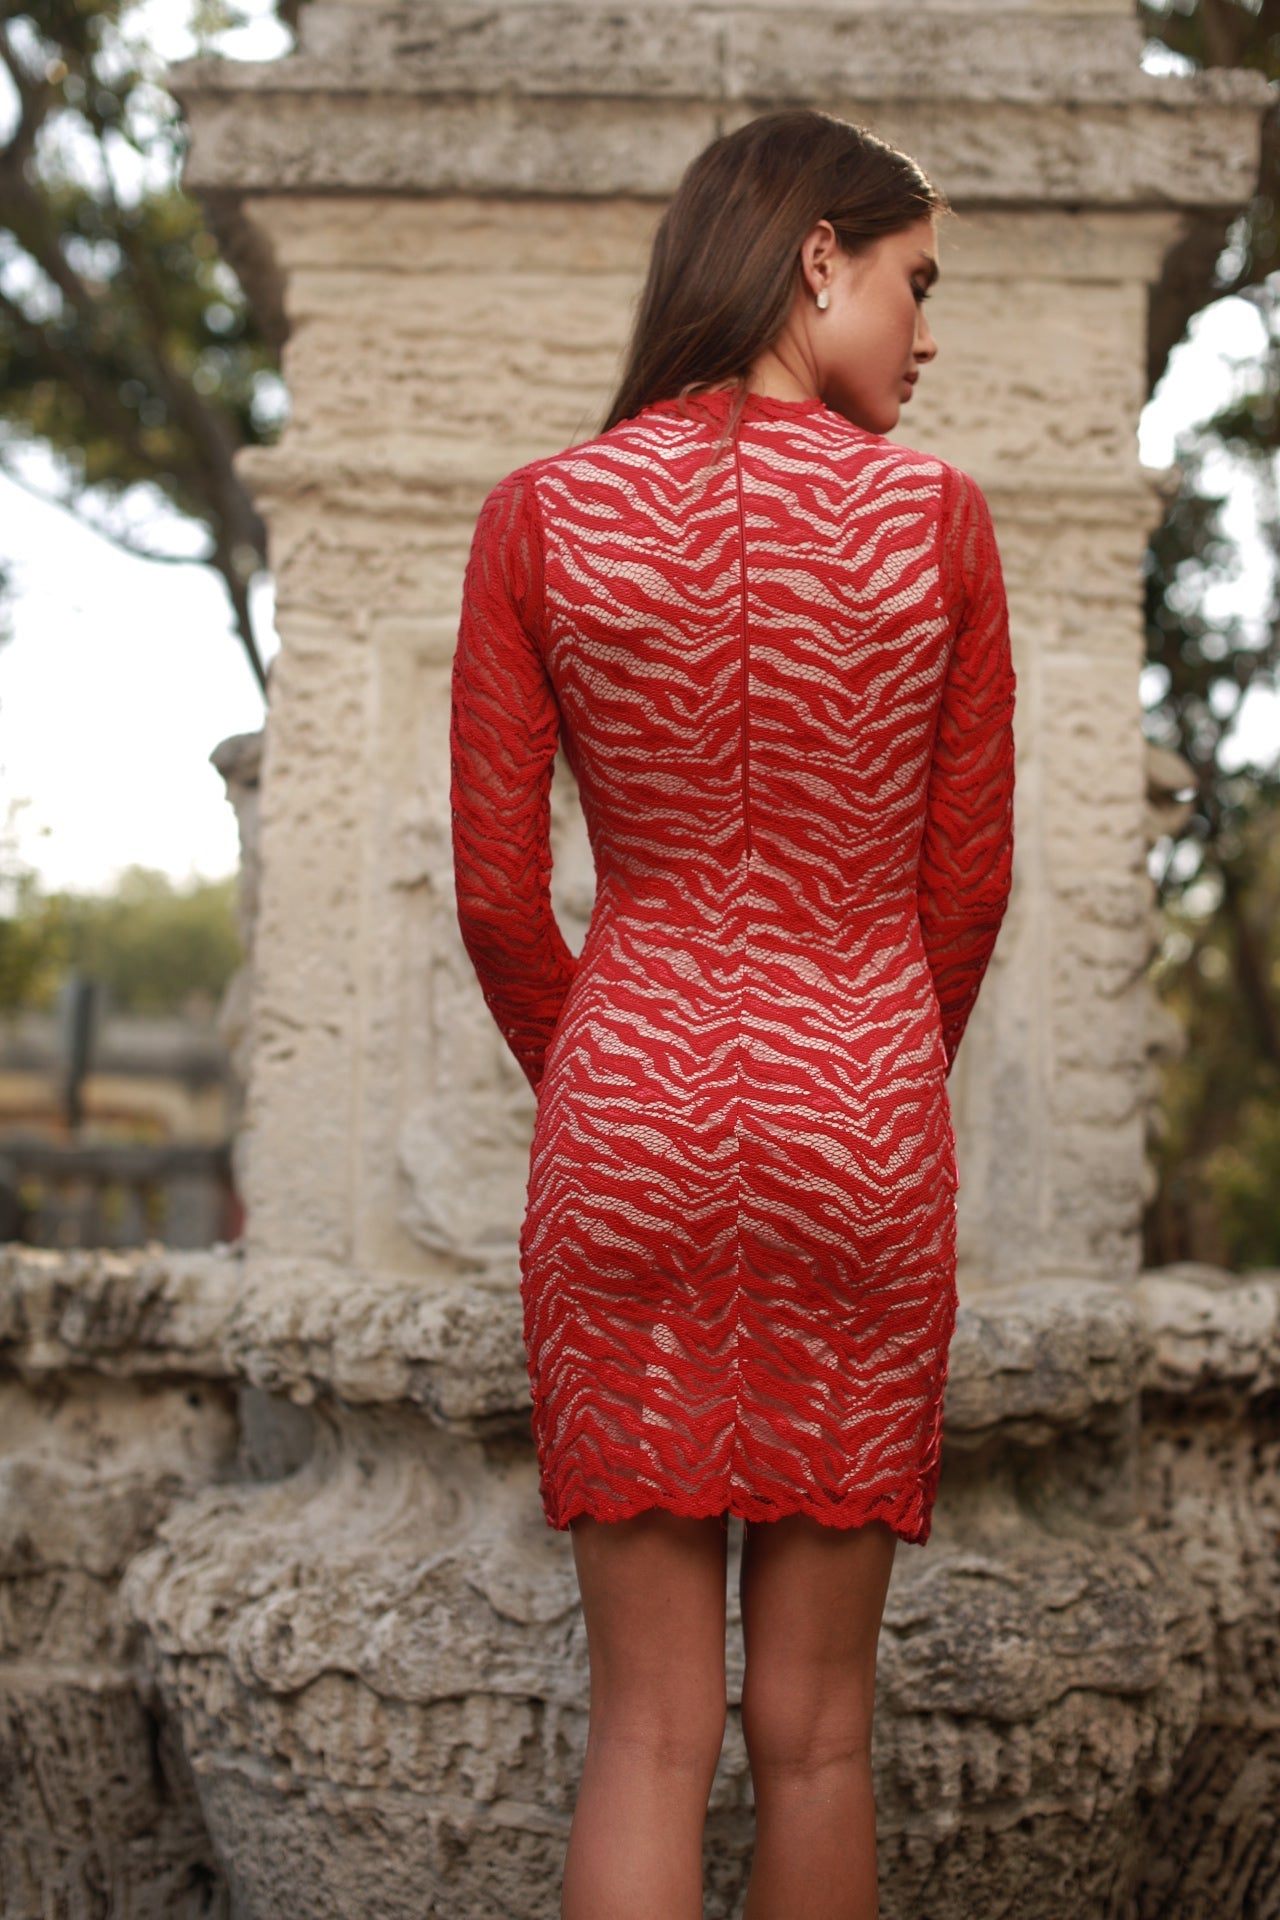 POCANE DRESS IN RED - 5 COLORS AVAILABLE